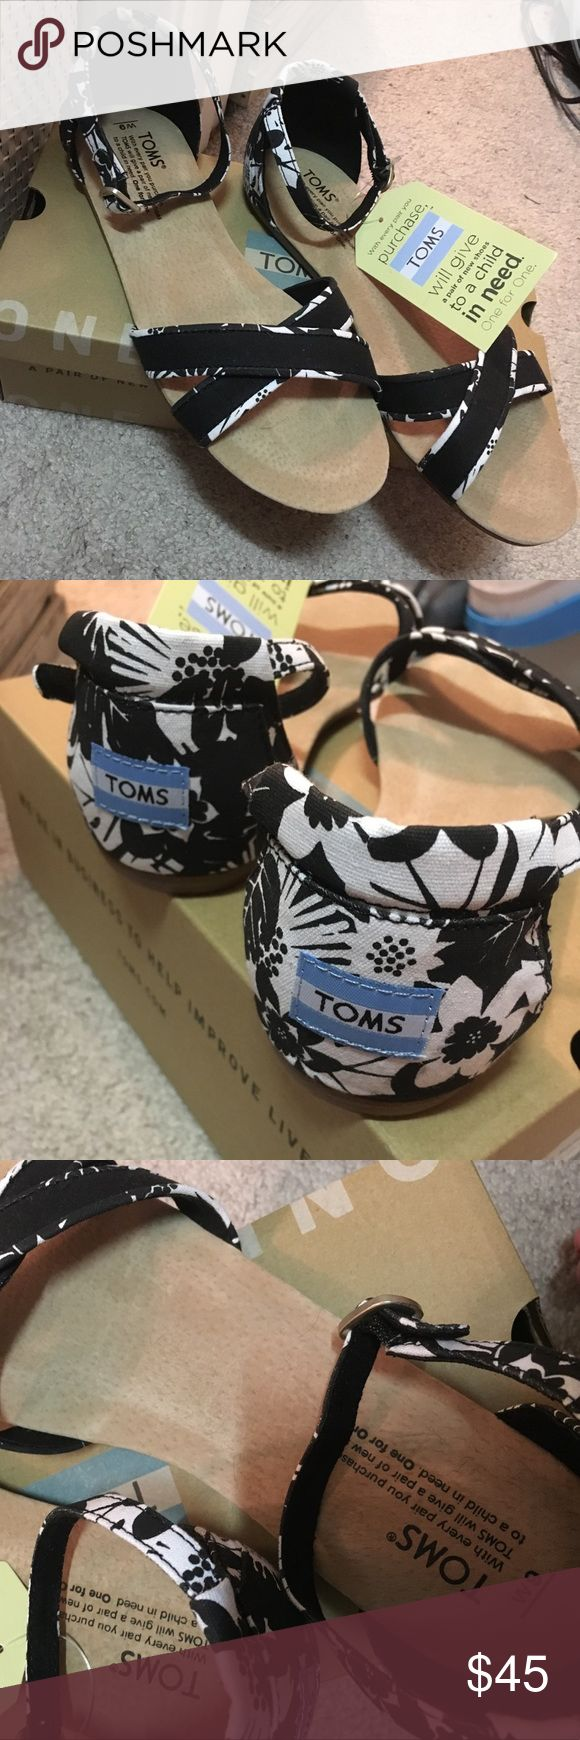 NEW black & white floral TOMS sandals Brand new black & white floral print Toms sandals! Never been worn, tags still attached. Will ship with box. Size 9. Price is firm. TOMS Shoes Sandals